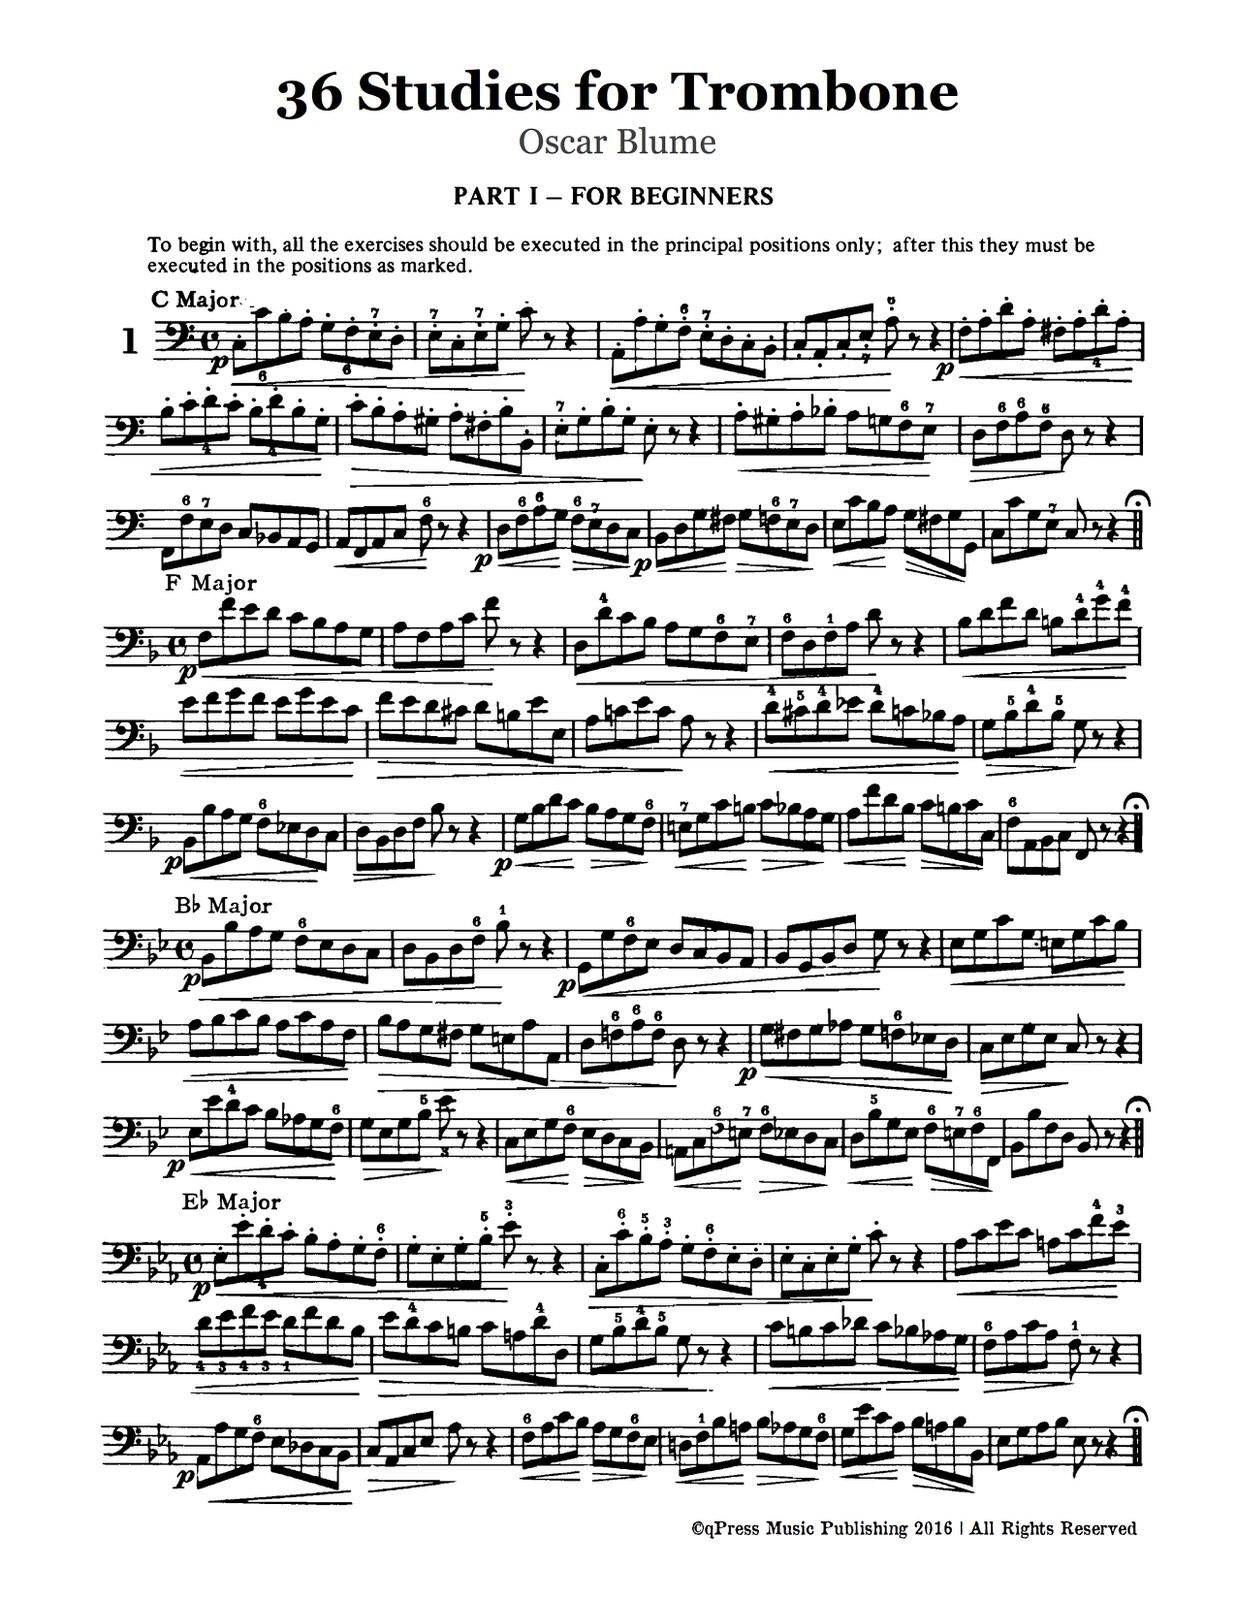 Blume, 36 Studies for Trombone-p03